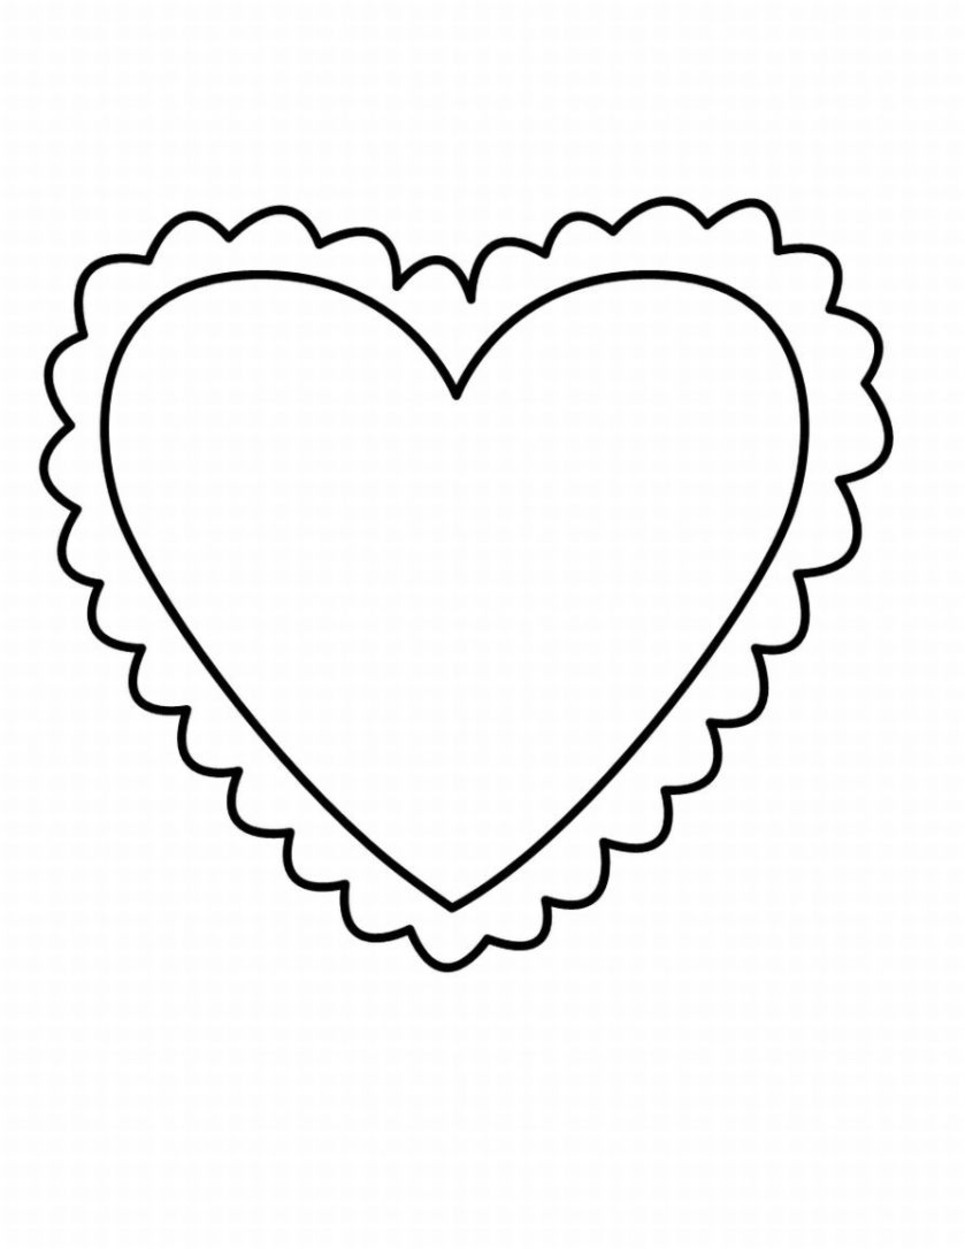 coloring book pictures of hearts valentine heart coloring pages best coloring pages for kids hearts of pictures book coloring